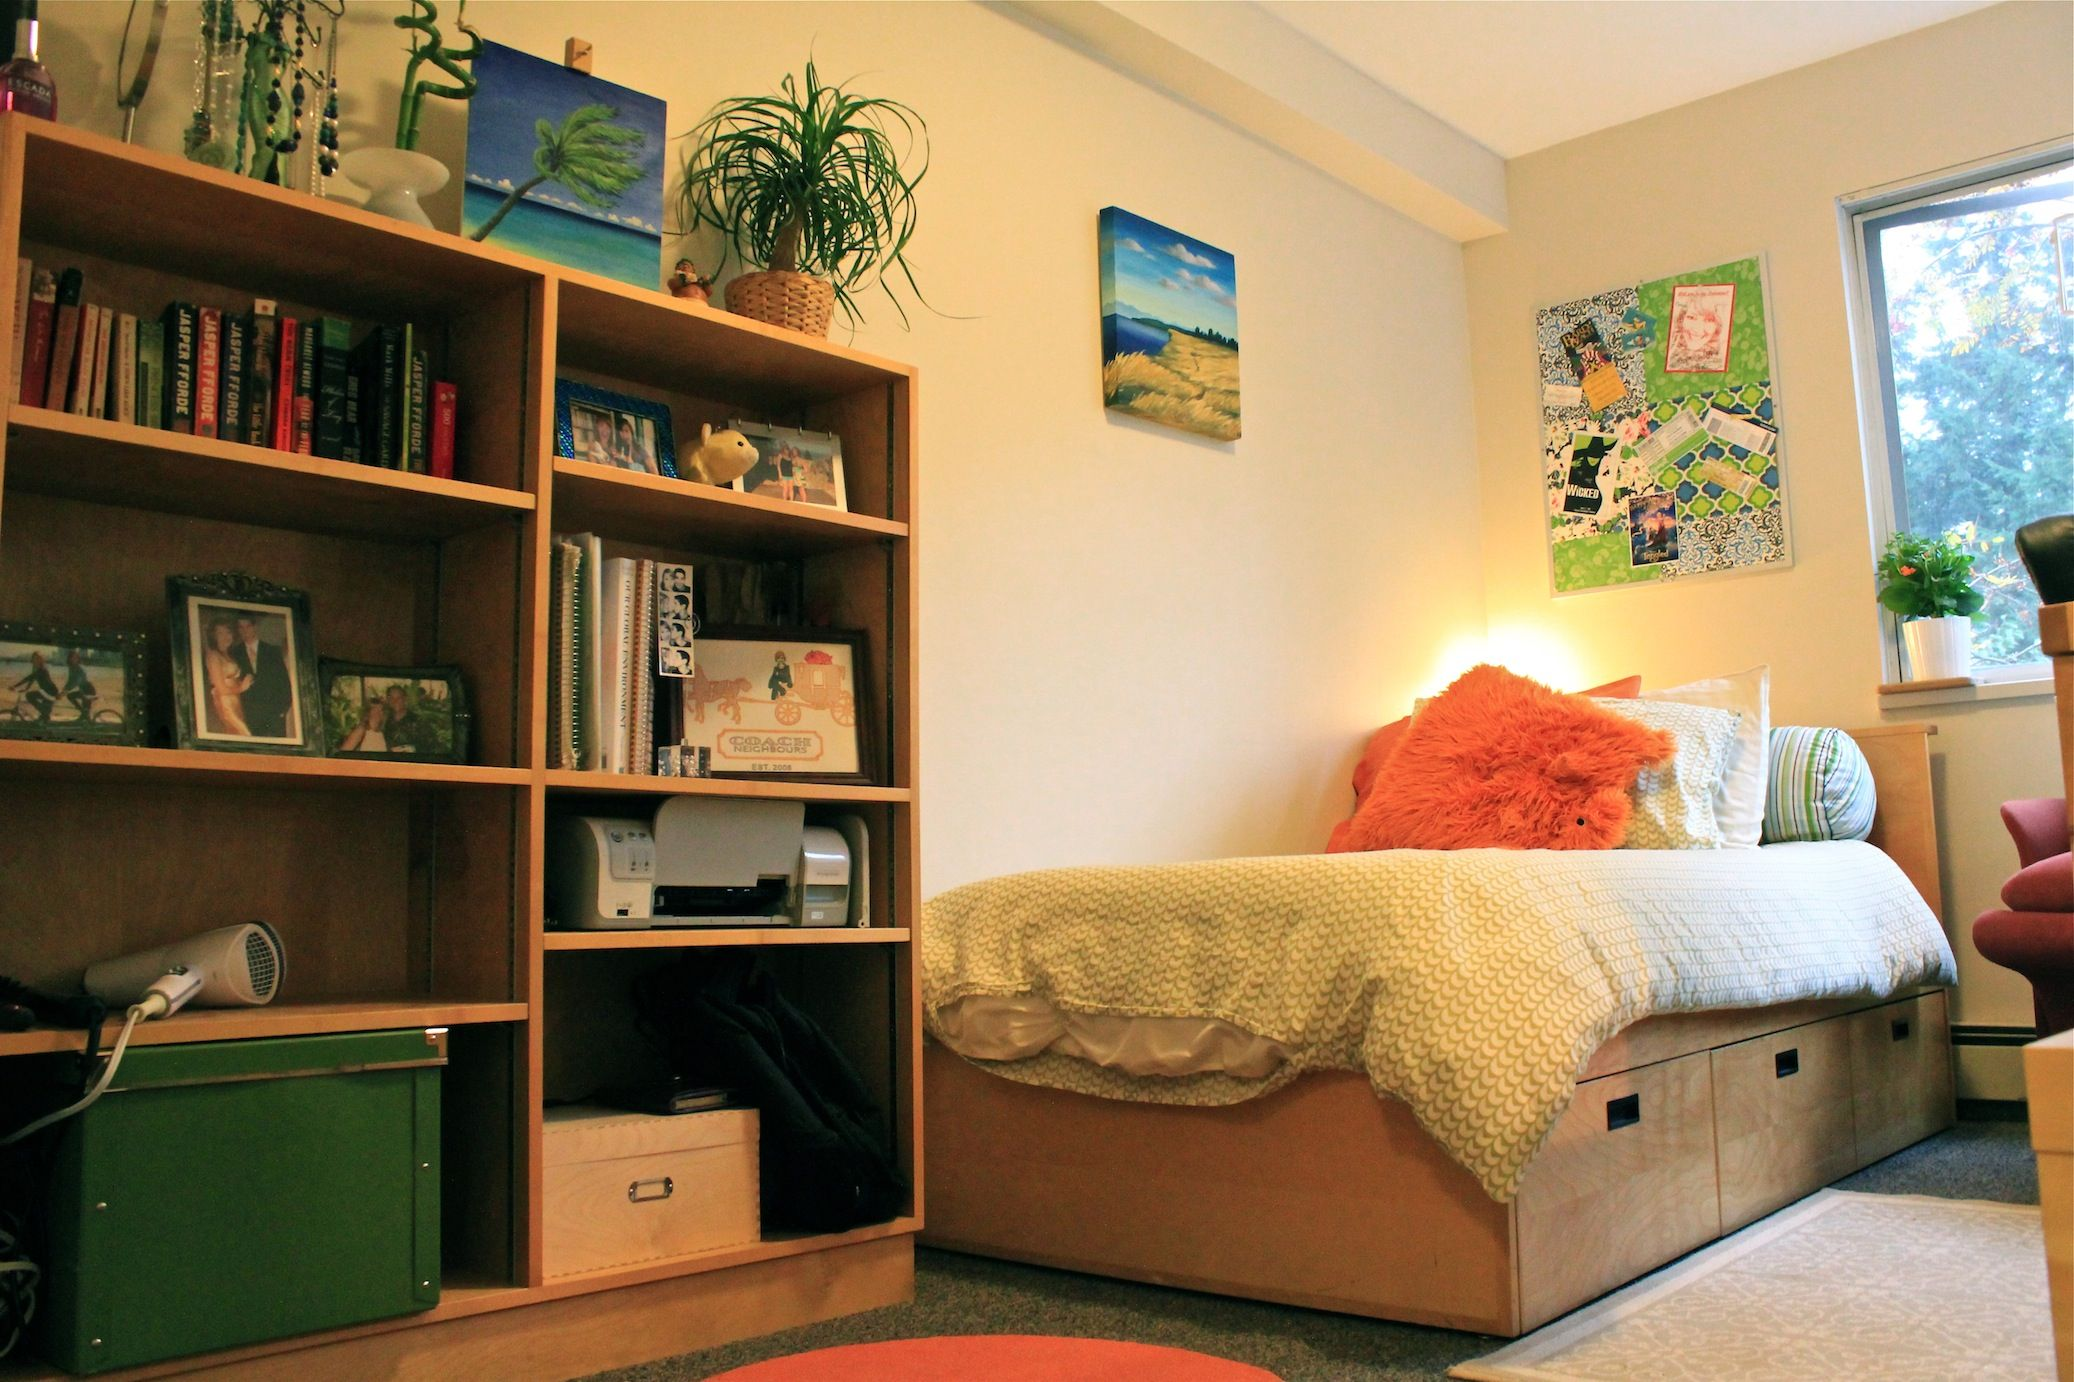 A nice, organized dorm room at the SFU Burnaby campus. http://at.sfu ...